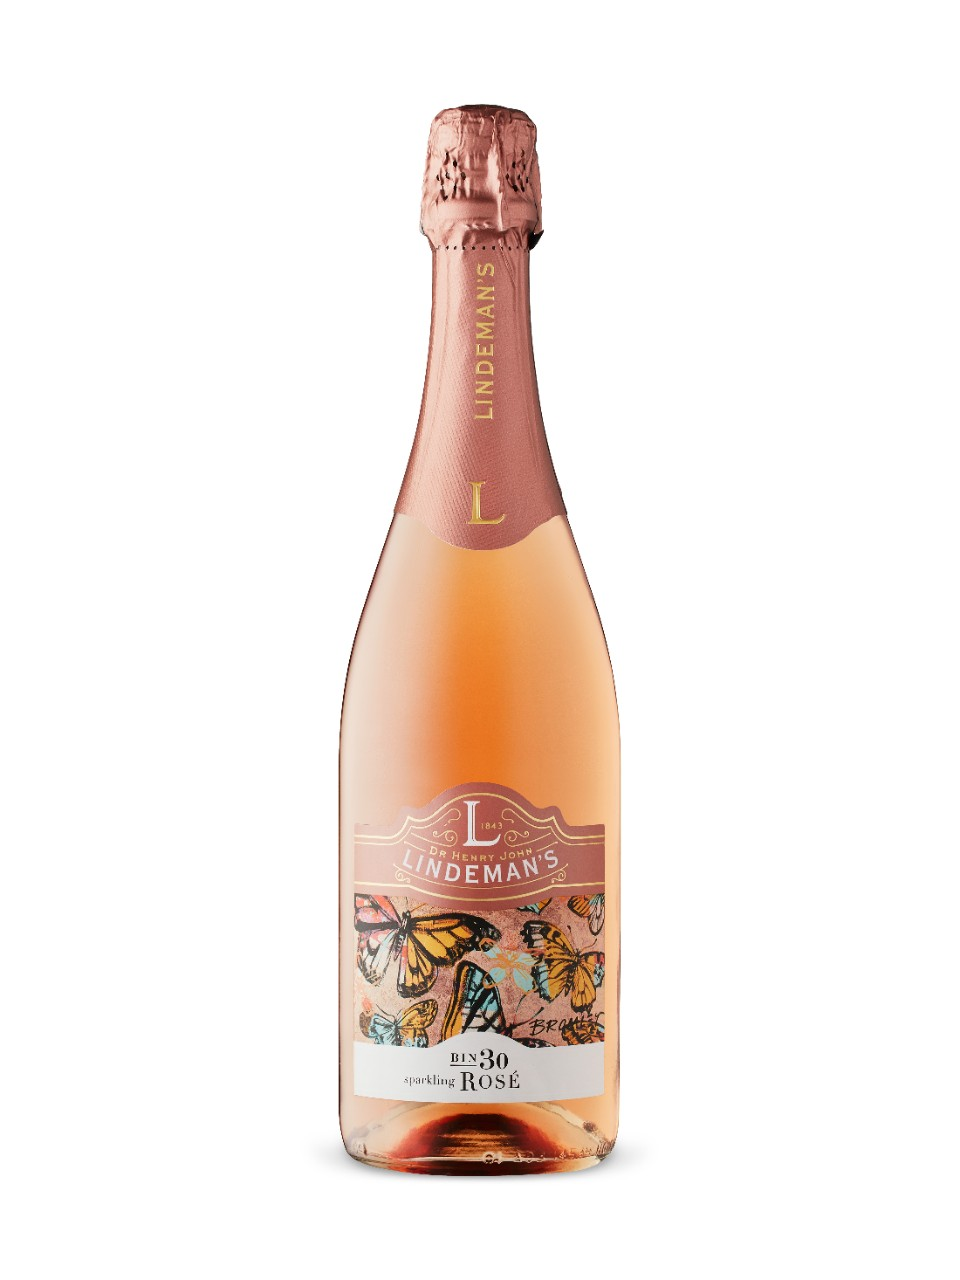 Lindeman's Bin 30 Sparkling Rosé from LCBO